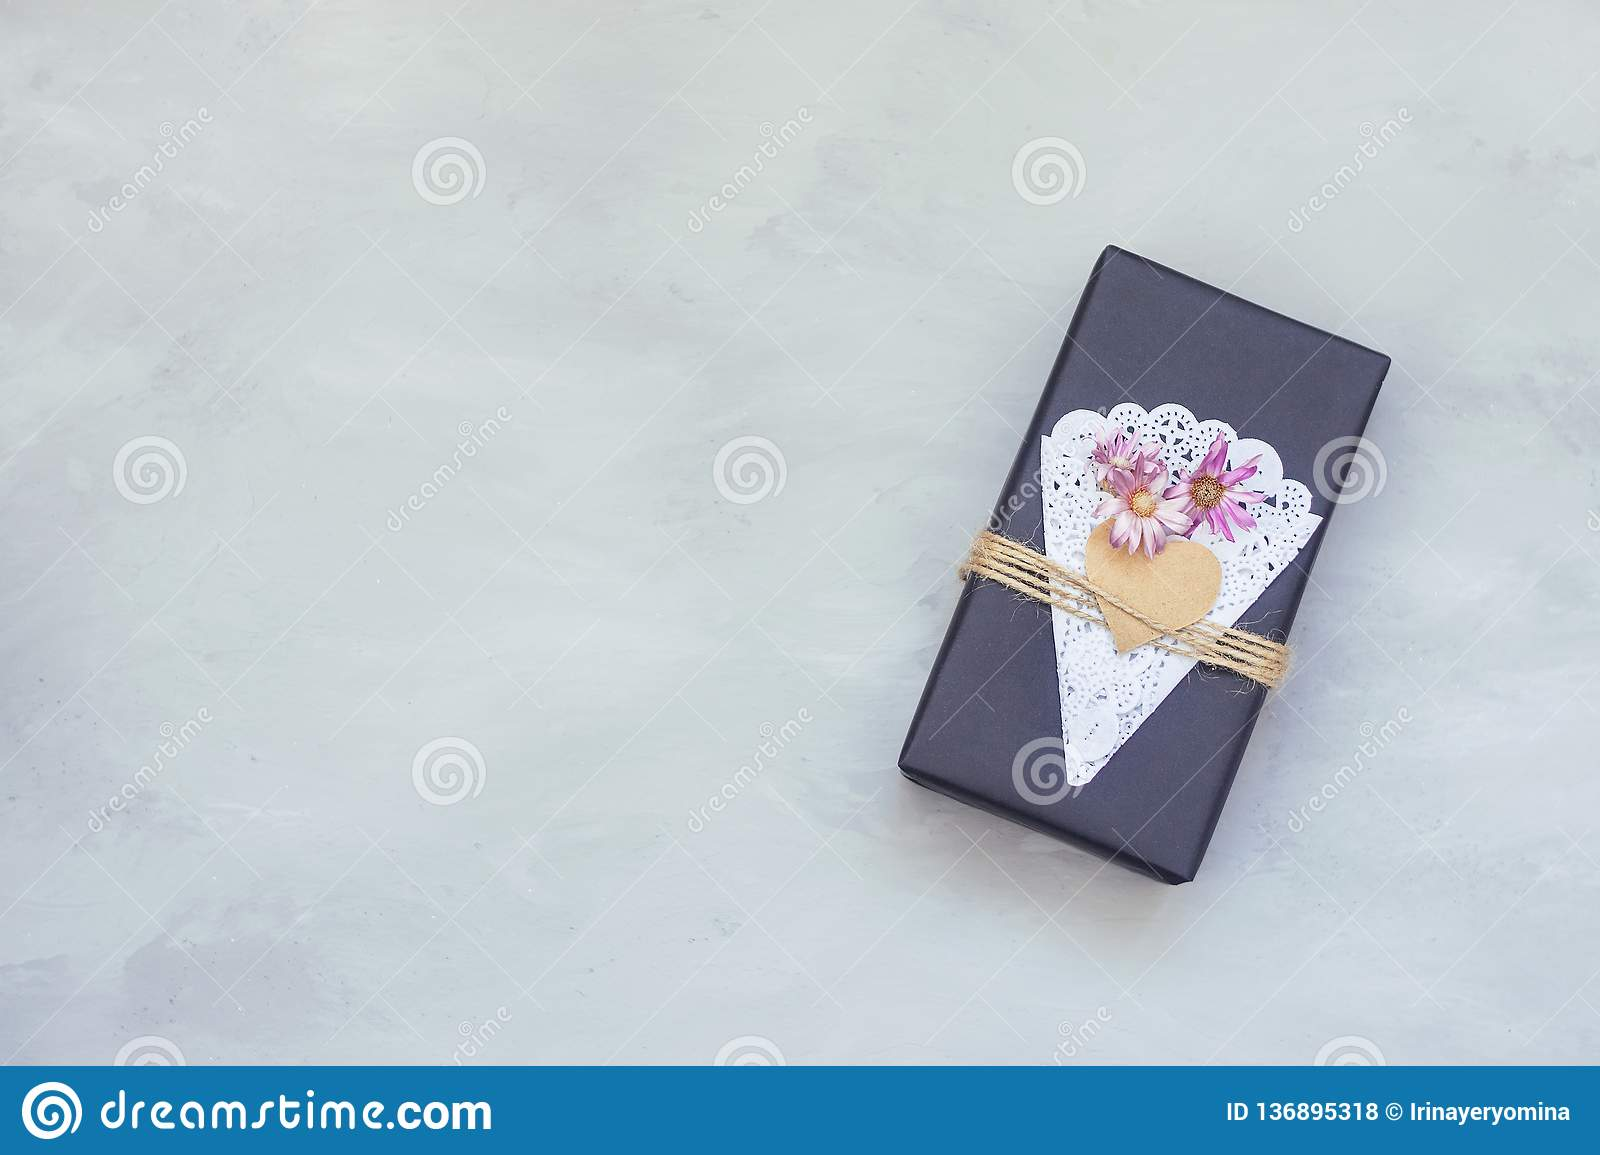 Valentines Day Gift Box Ideas Black Paper Present Box With Heart